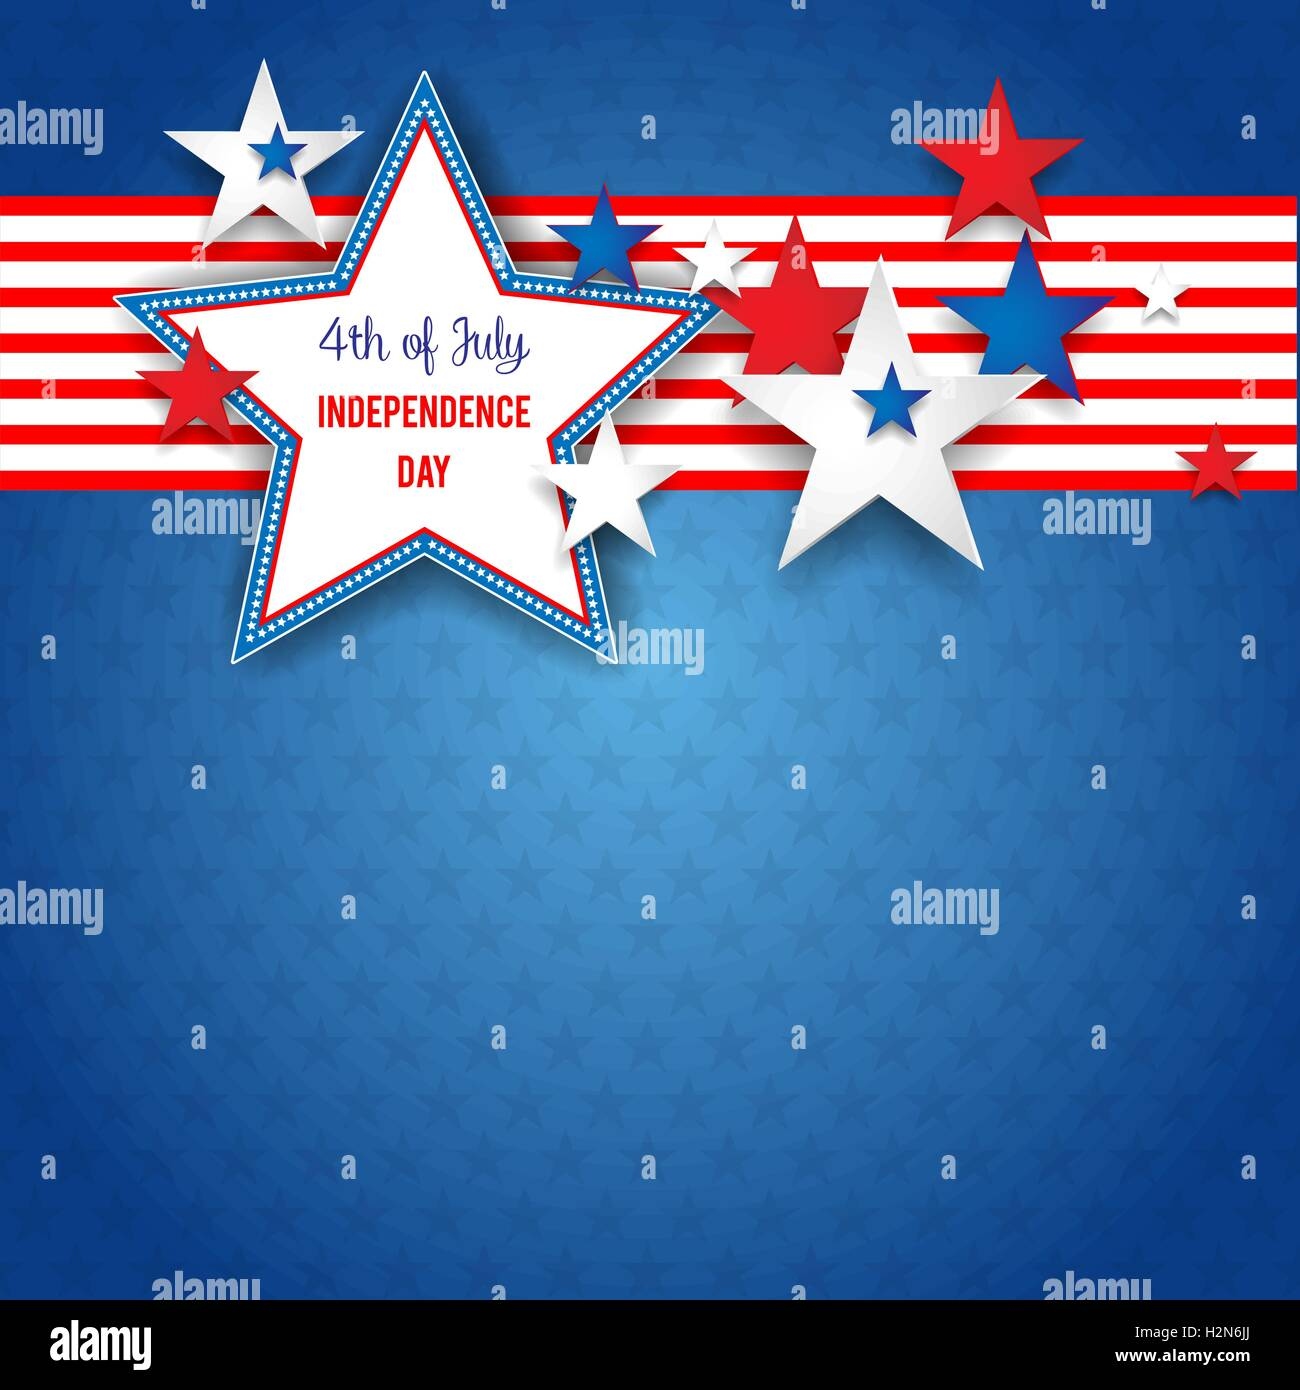 Independence day abstract background - Stock Vector